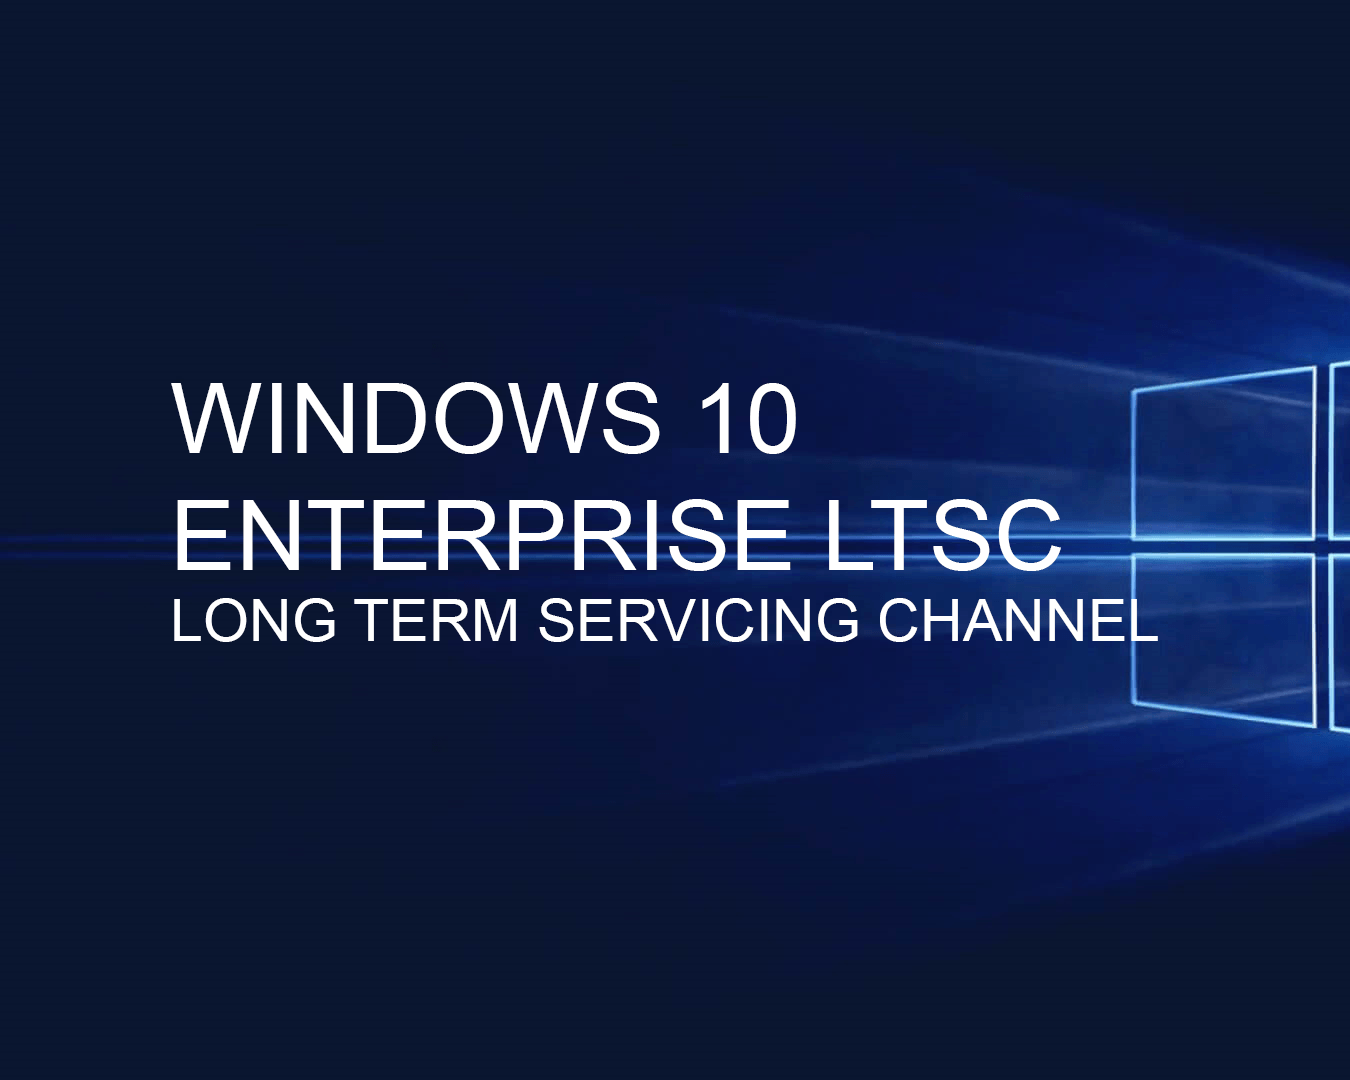 Windows 10 LTSC Enterprise.